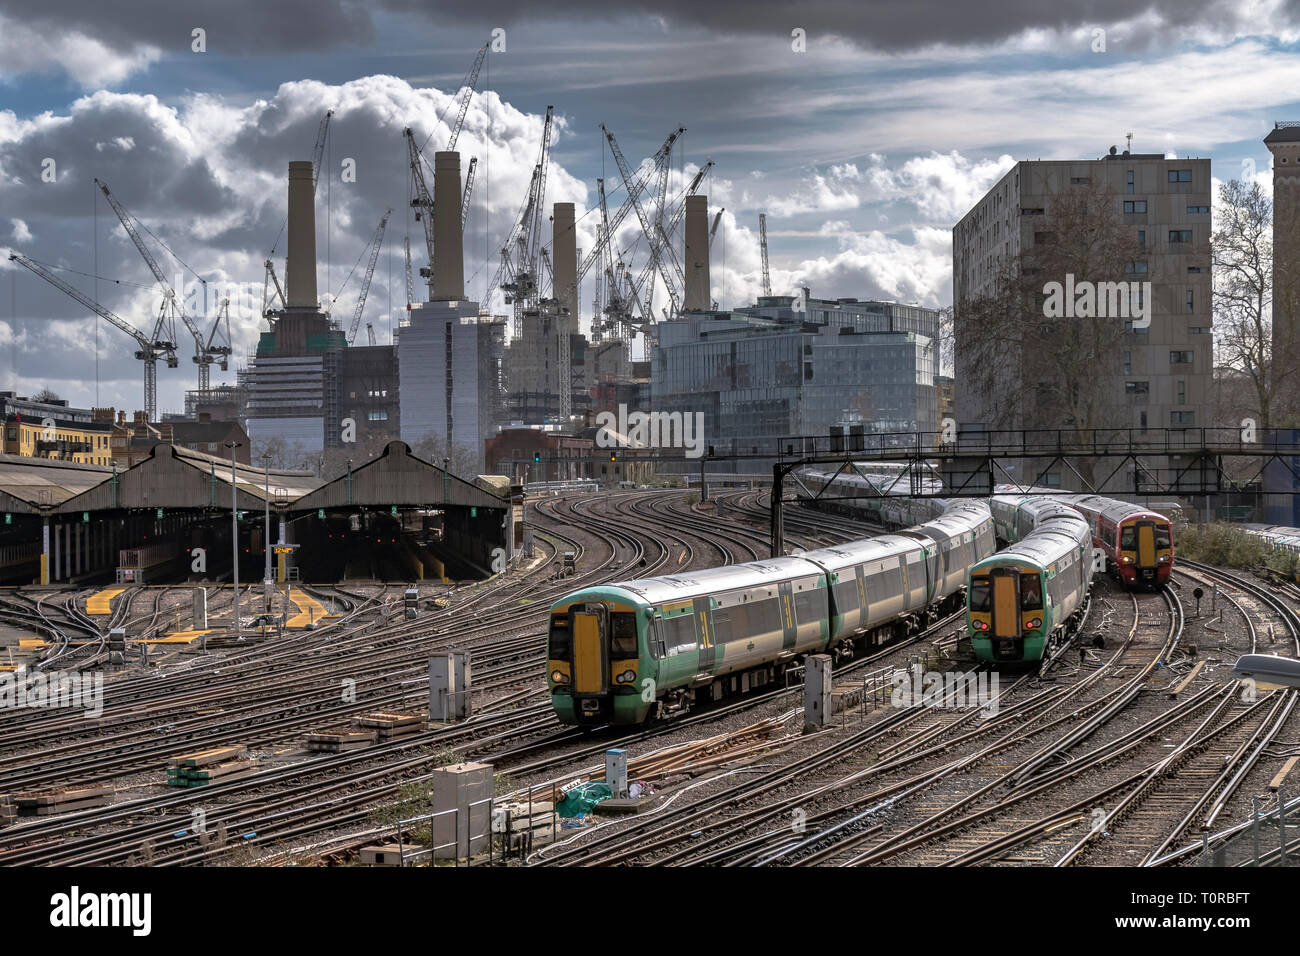 Southern Rail train approaching Ebury Bridge on the final approach to Victorian Station ,with Battersea Power Station in the distance ,London SW1 - Stock Image